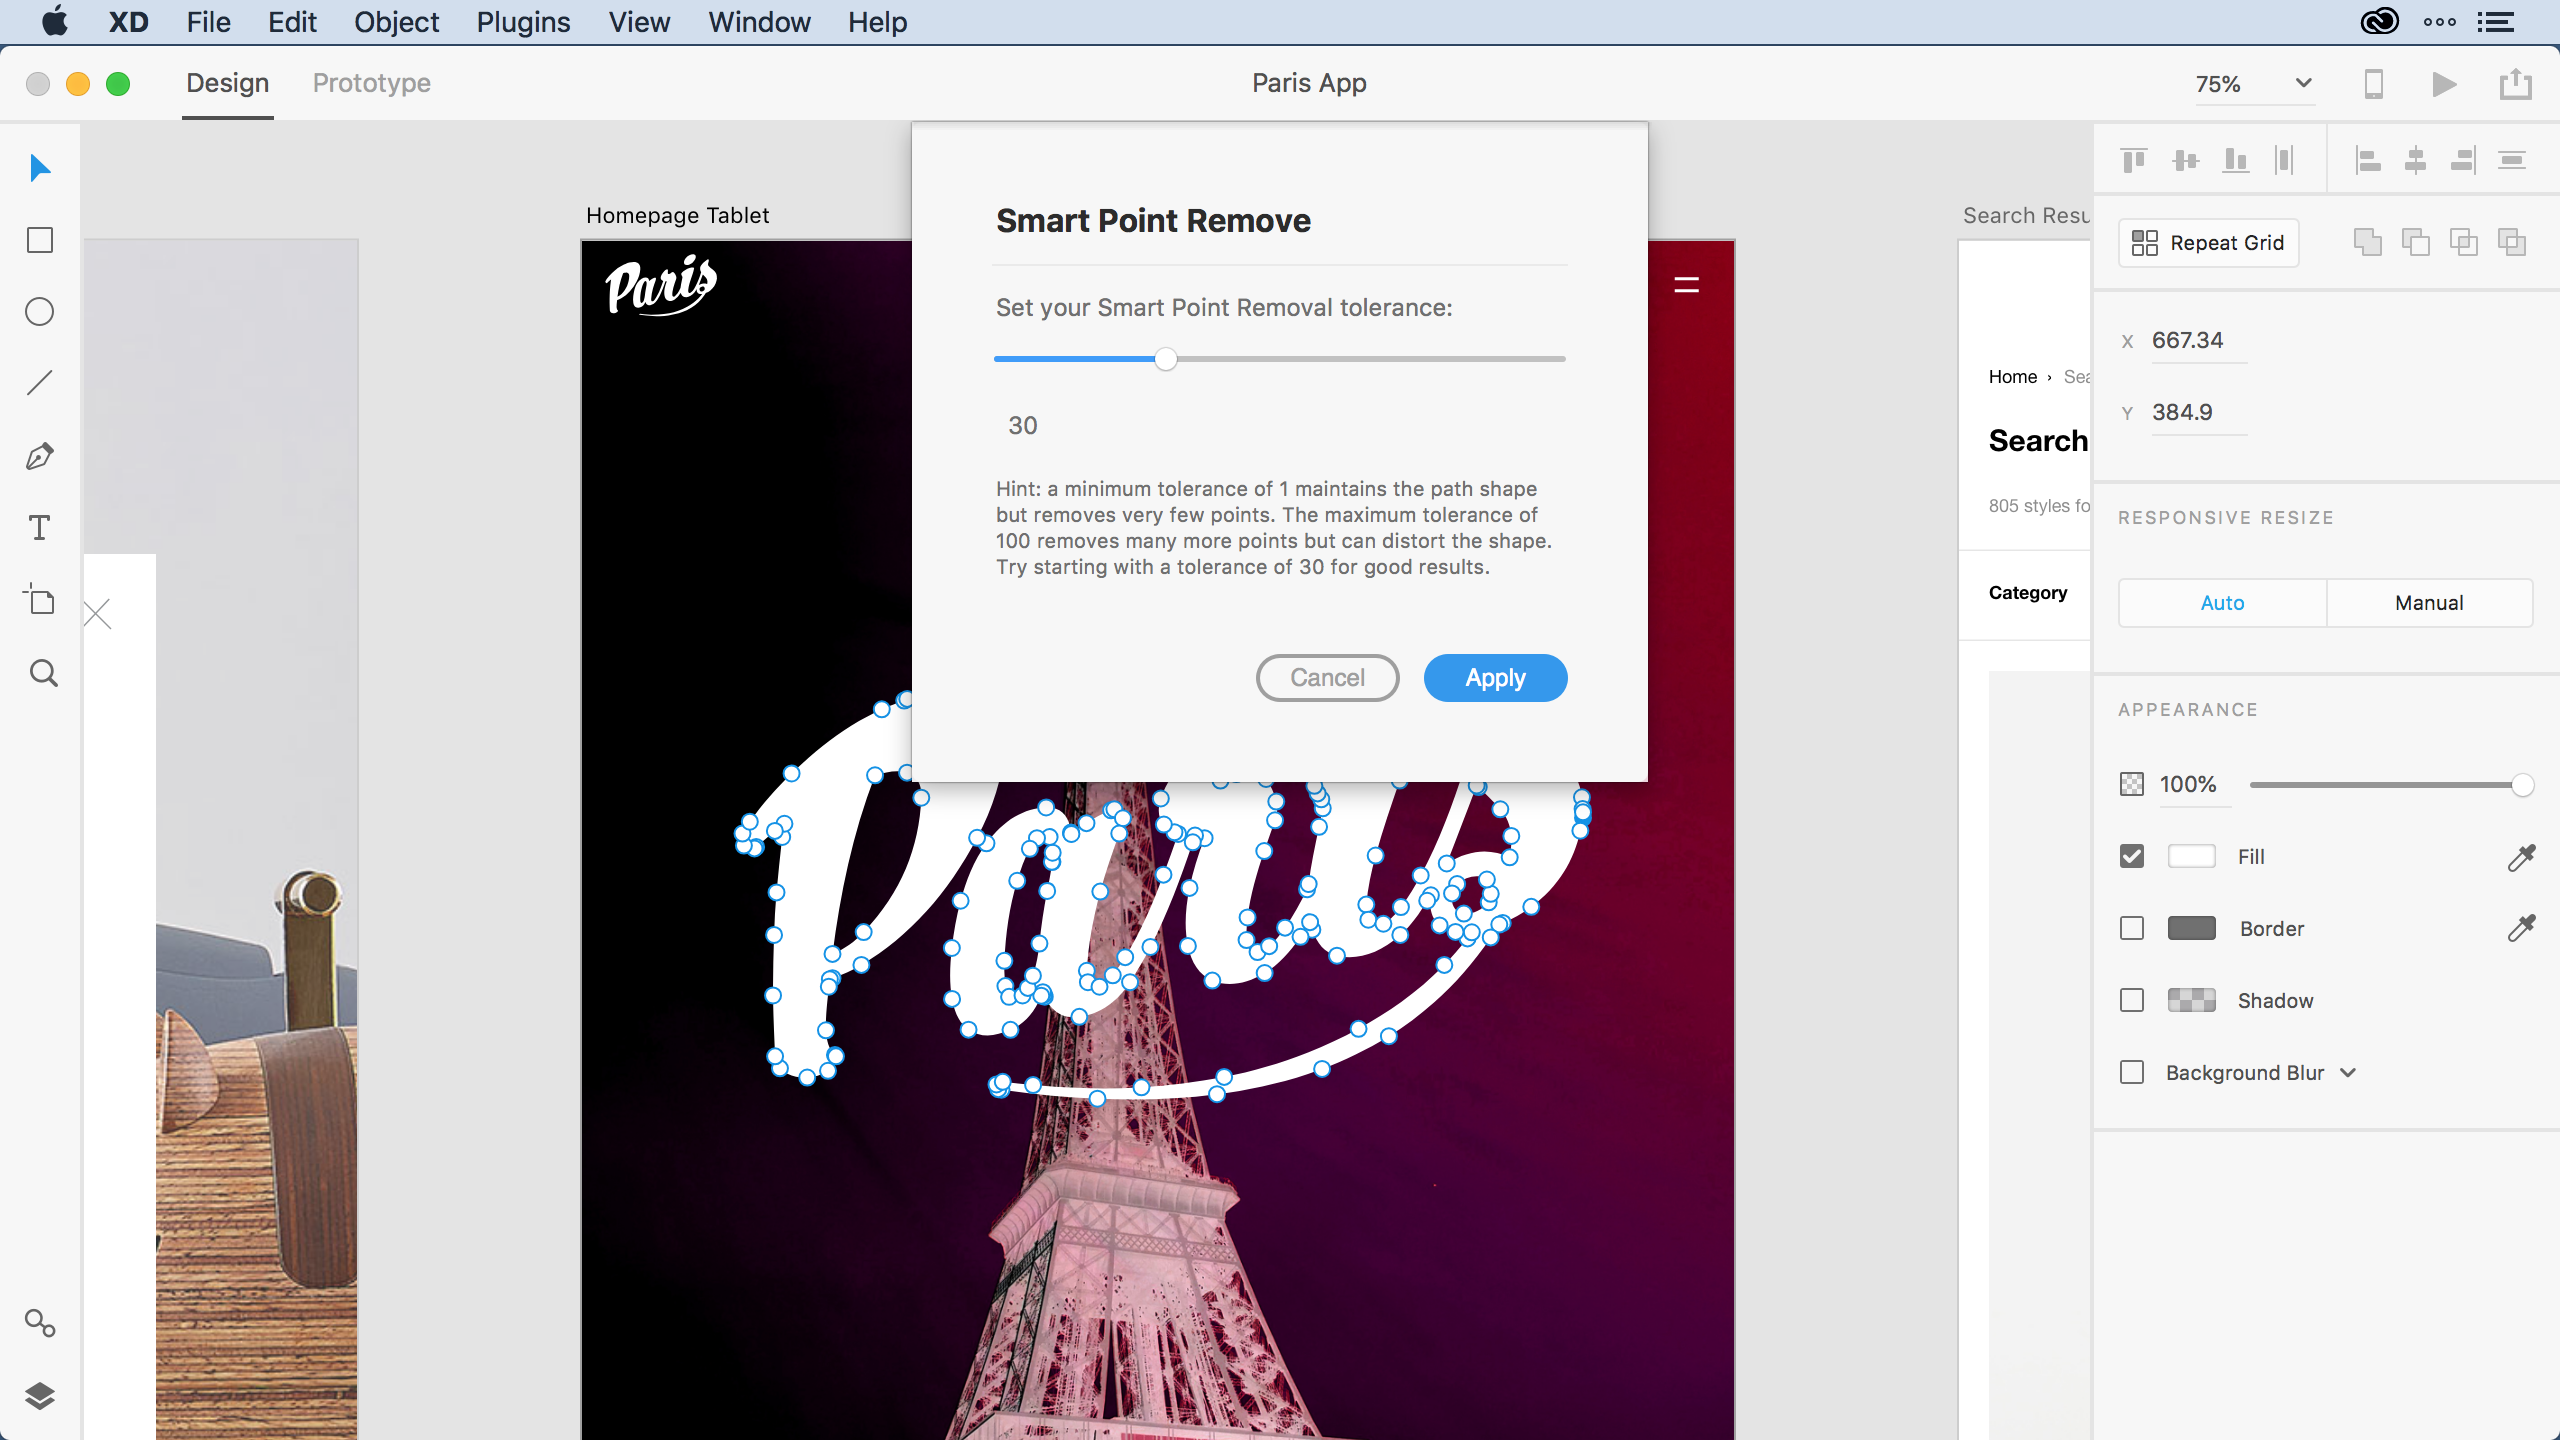 Building a Smart Points Removal Plugin For Adobe XD Using